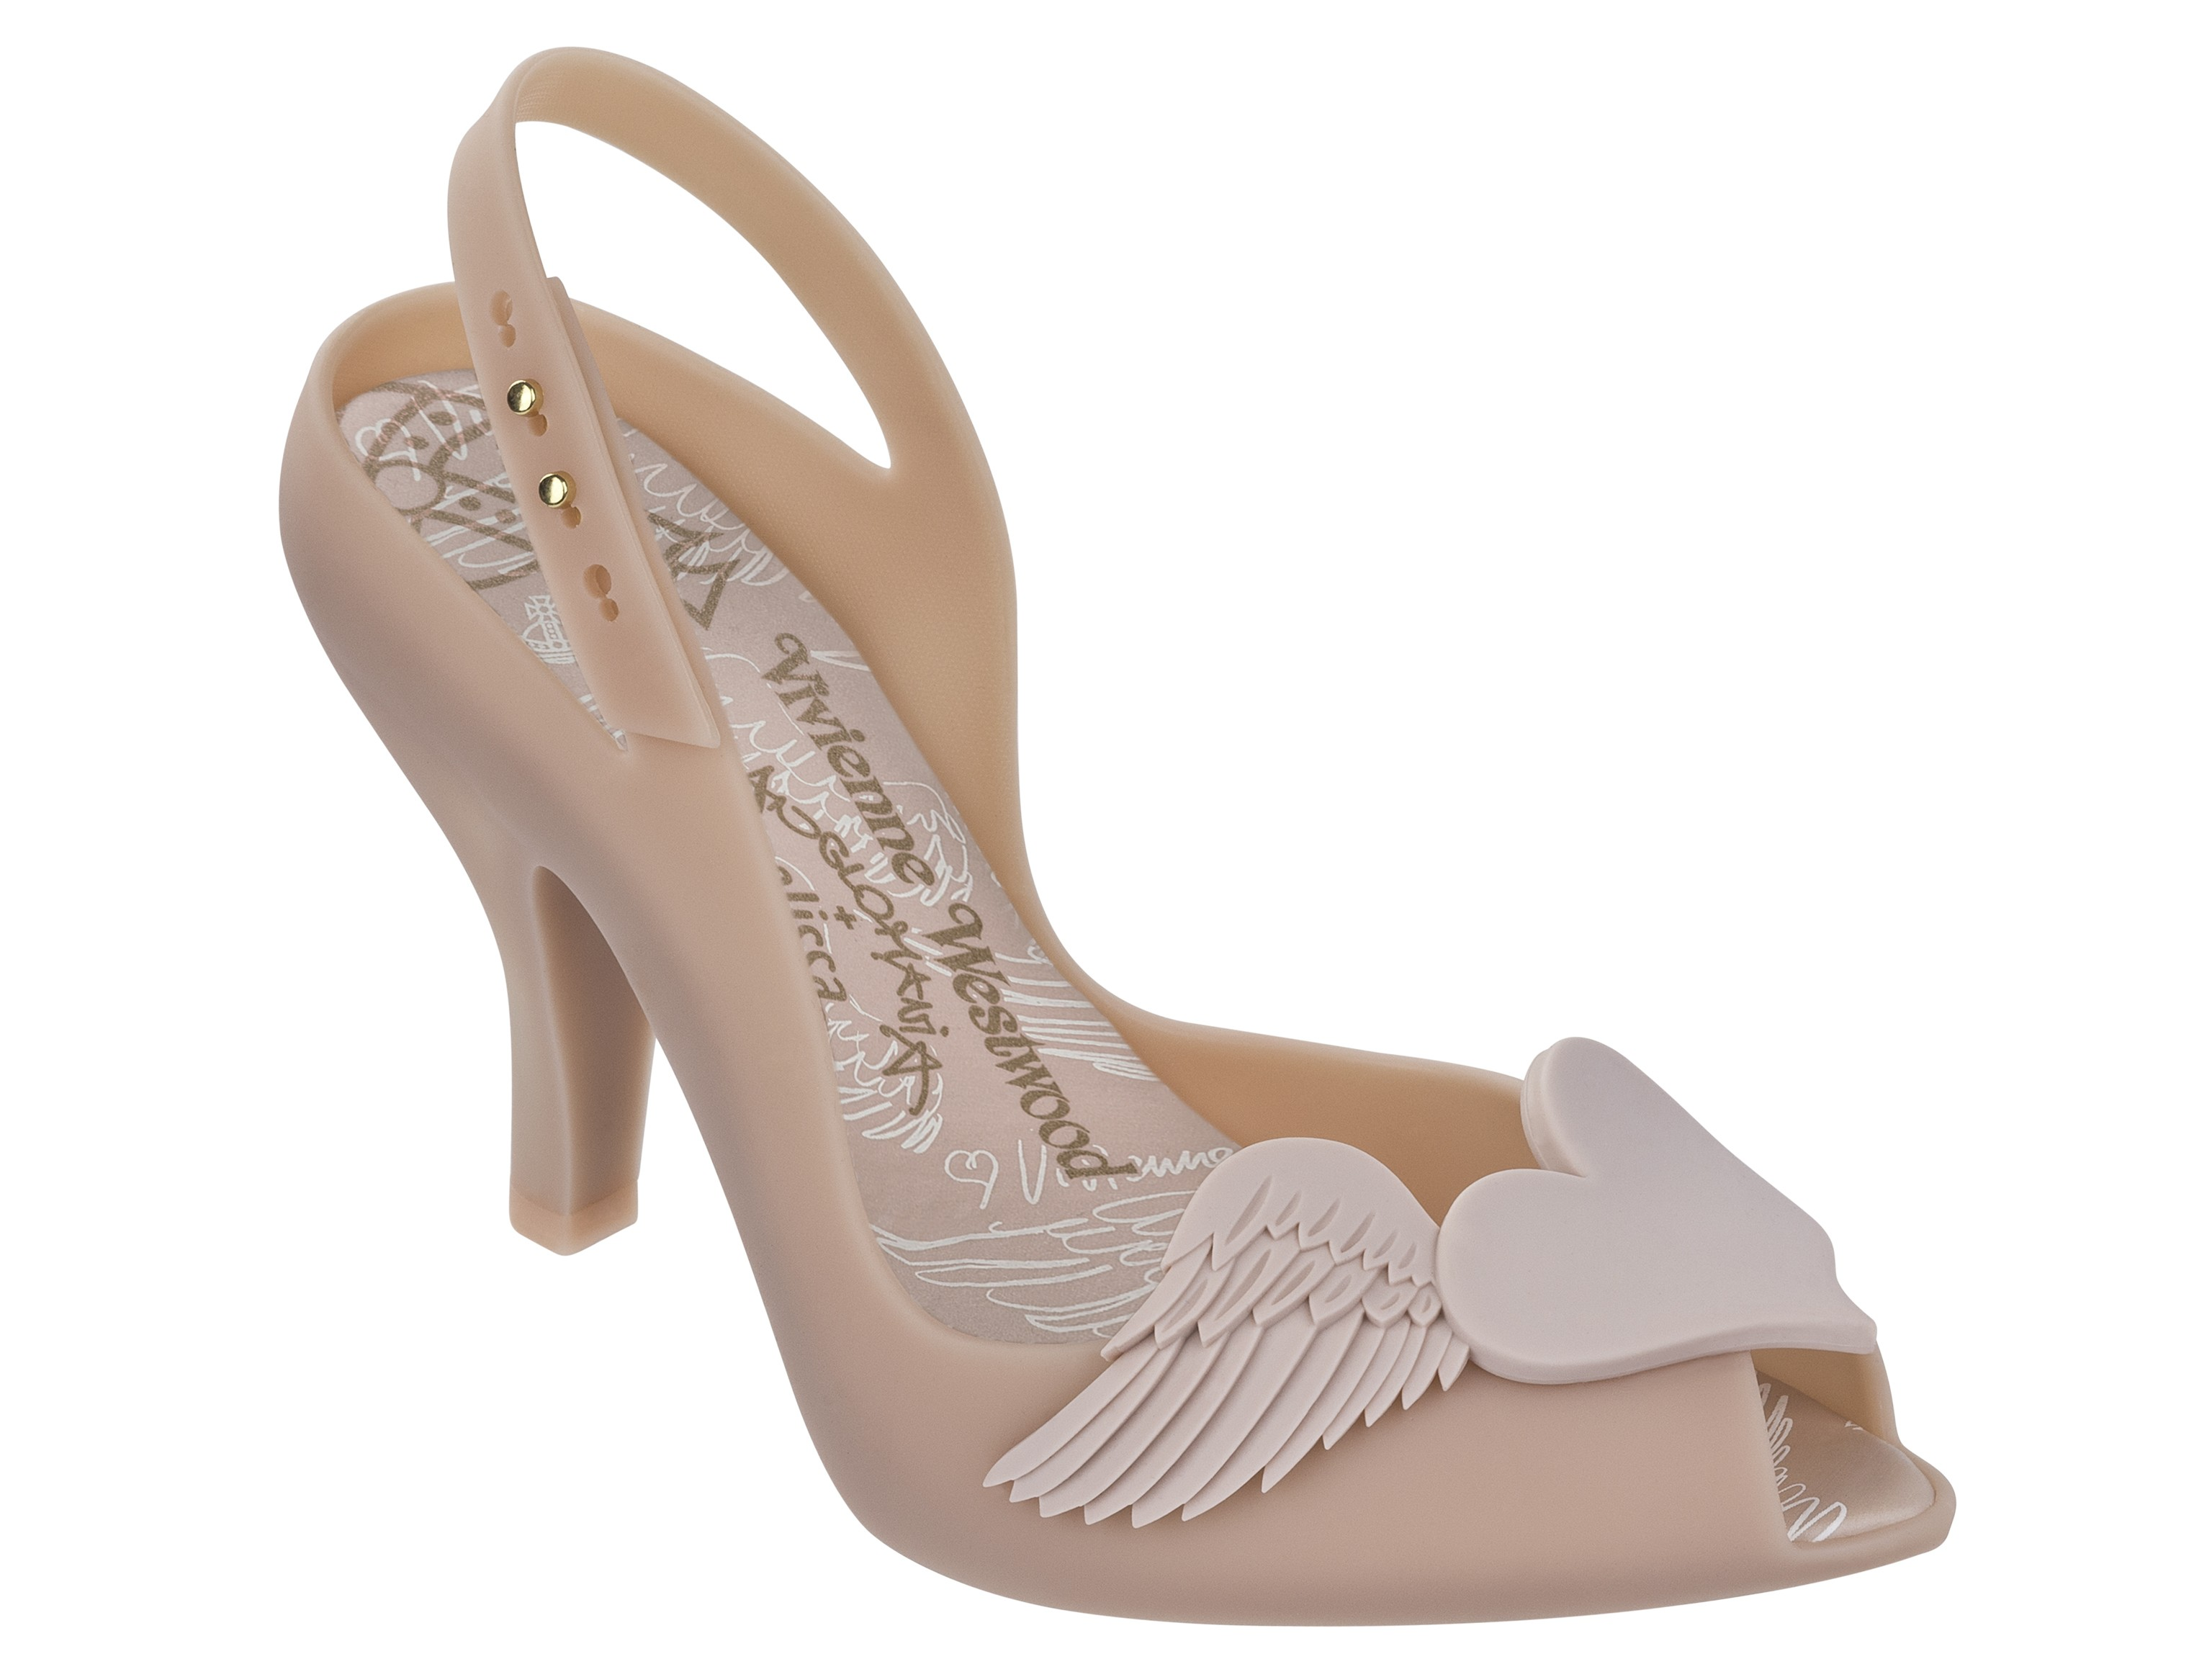 vivienne westwood shoes vw lady dragon 16 nude cherub | vivienne westwood + melissa shoes |  nonnon.co.uk CPTXEEU